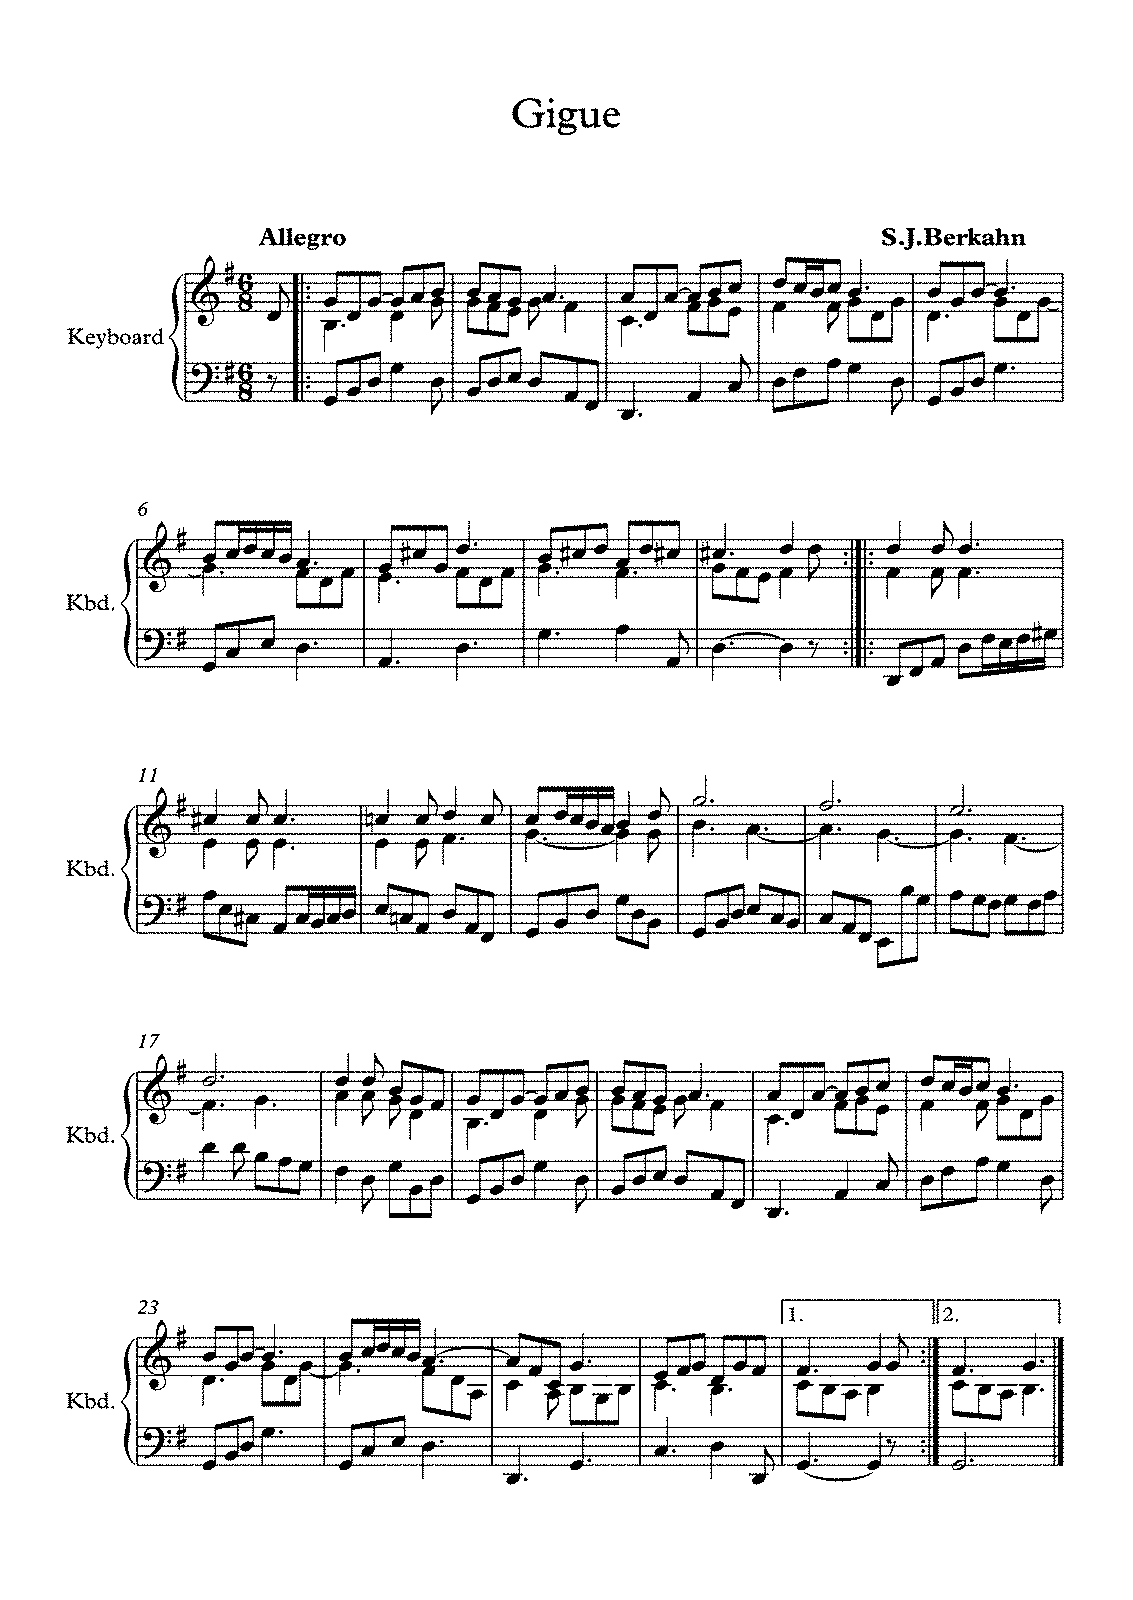 PMLP465944-Gigue No. 1 - Full Score.pdf